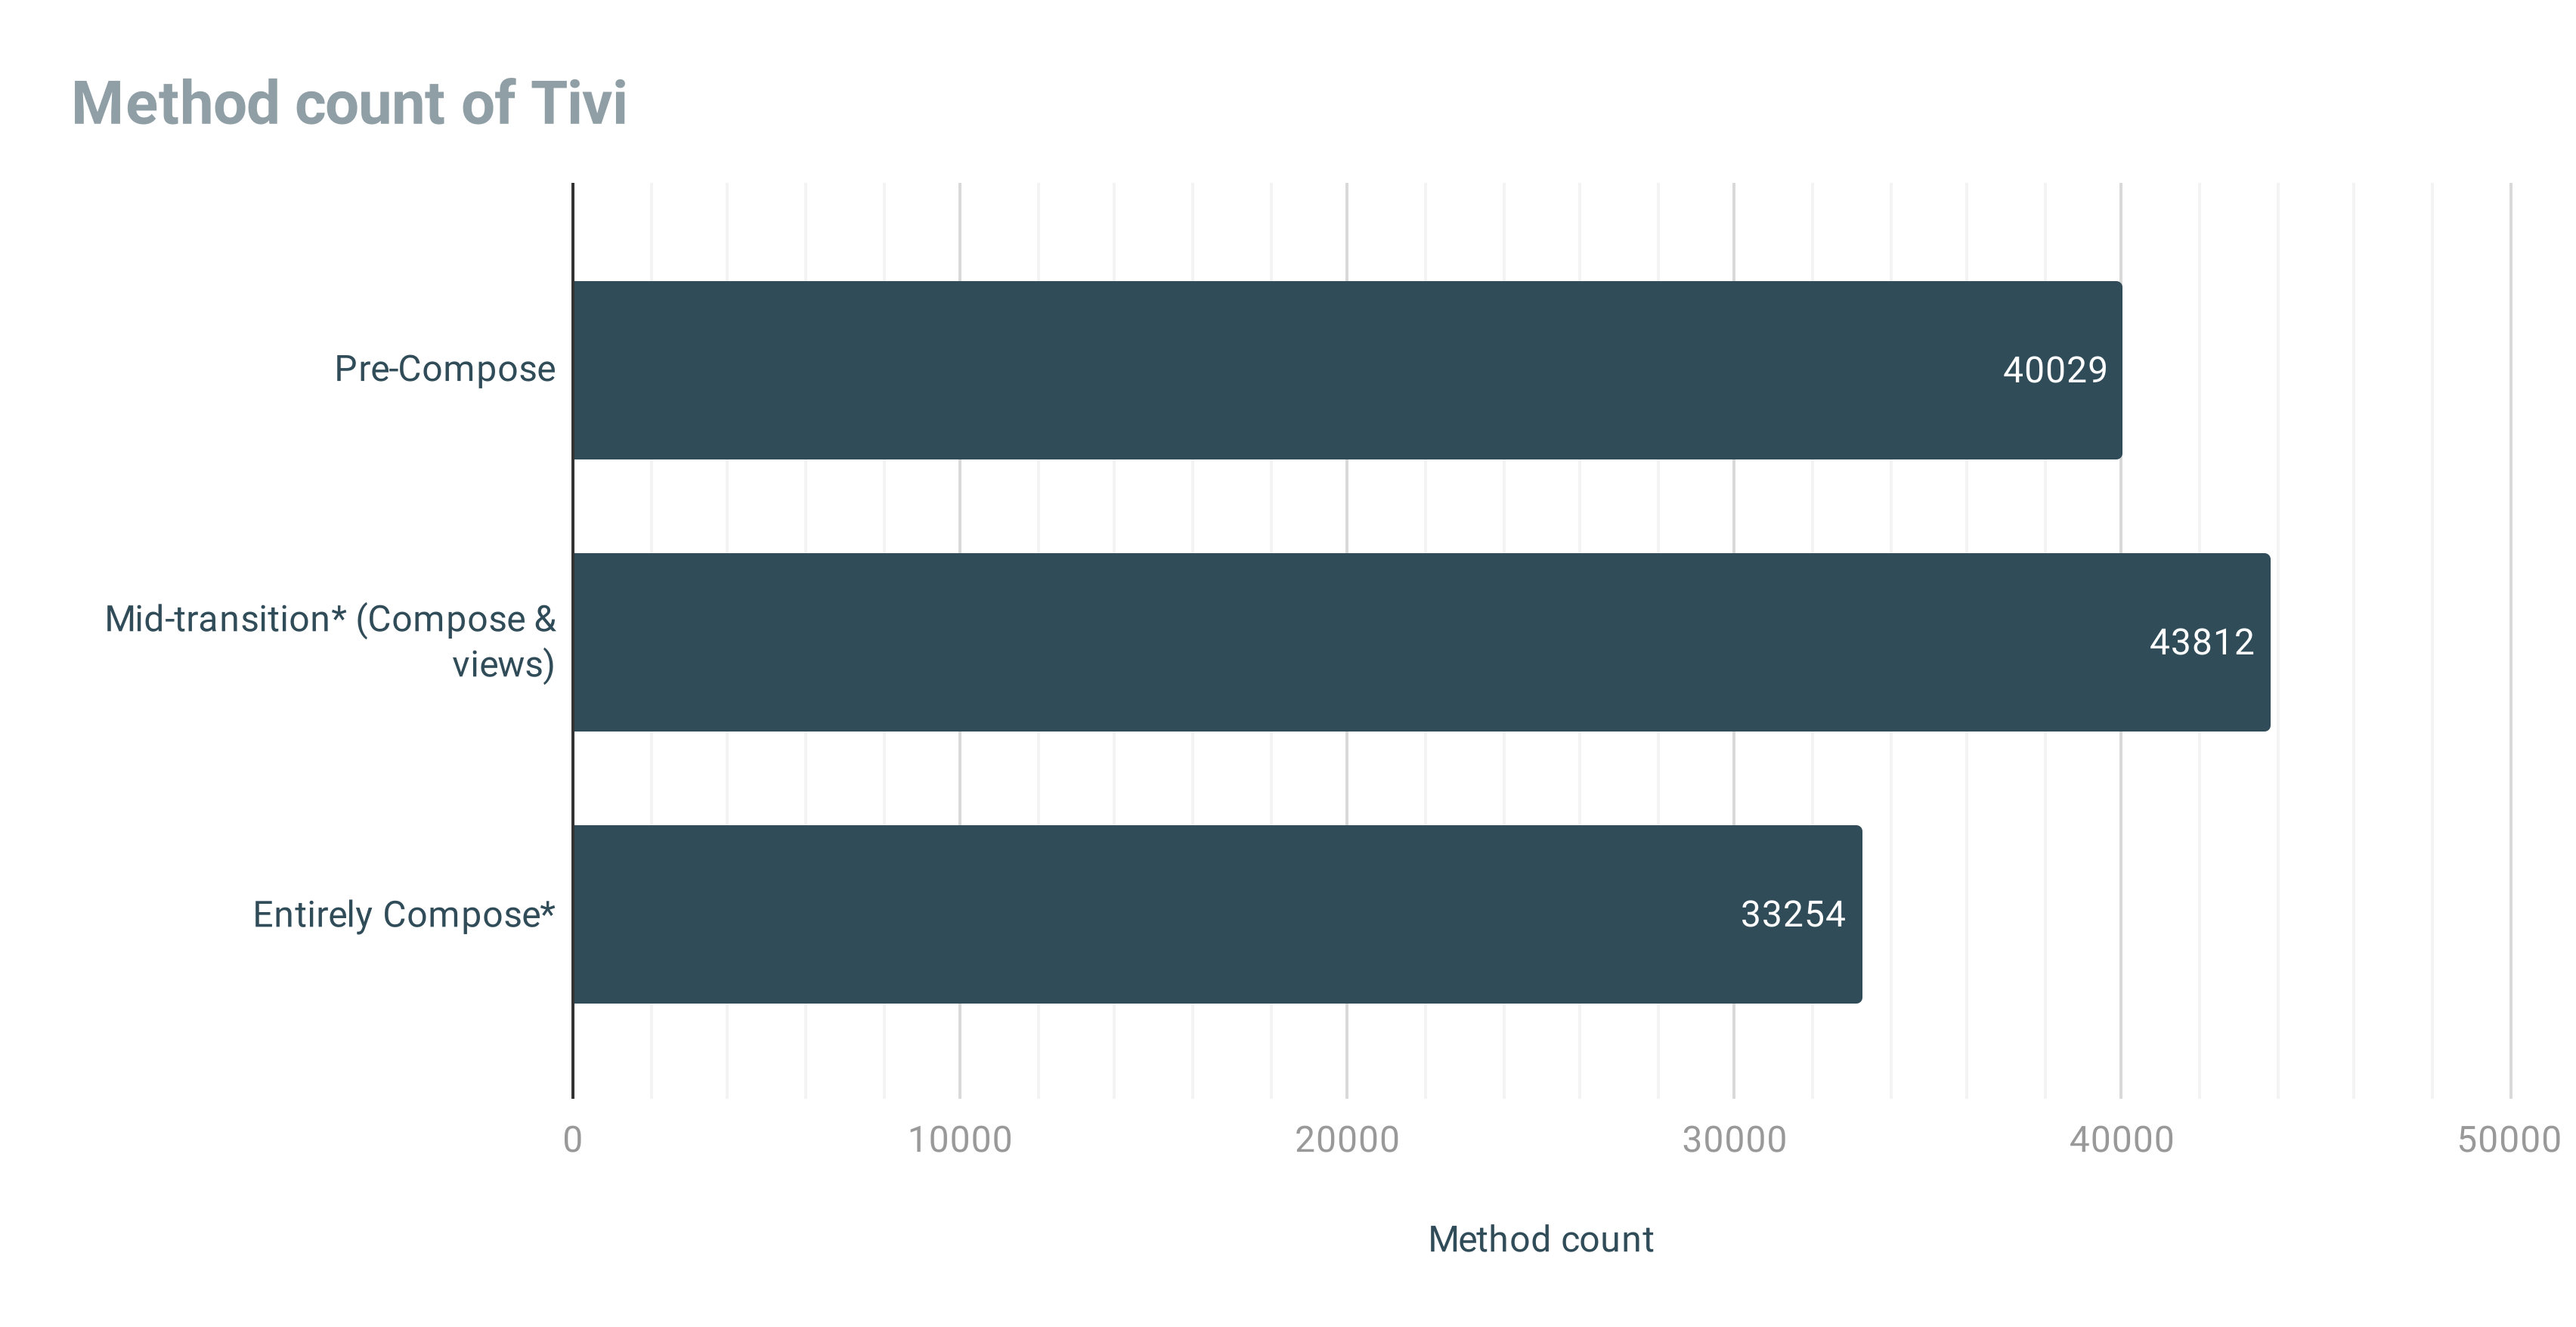 Chart showing method count of Tivi. Pre-Compose: 40029, Mid-transition: 43812, Entirely Compose: 33254